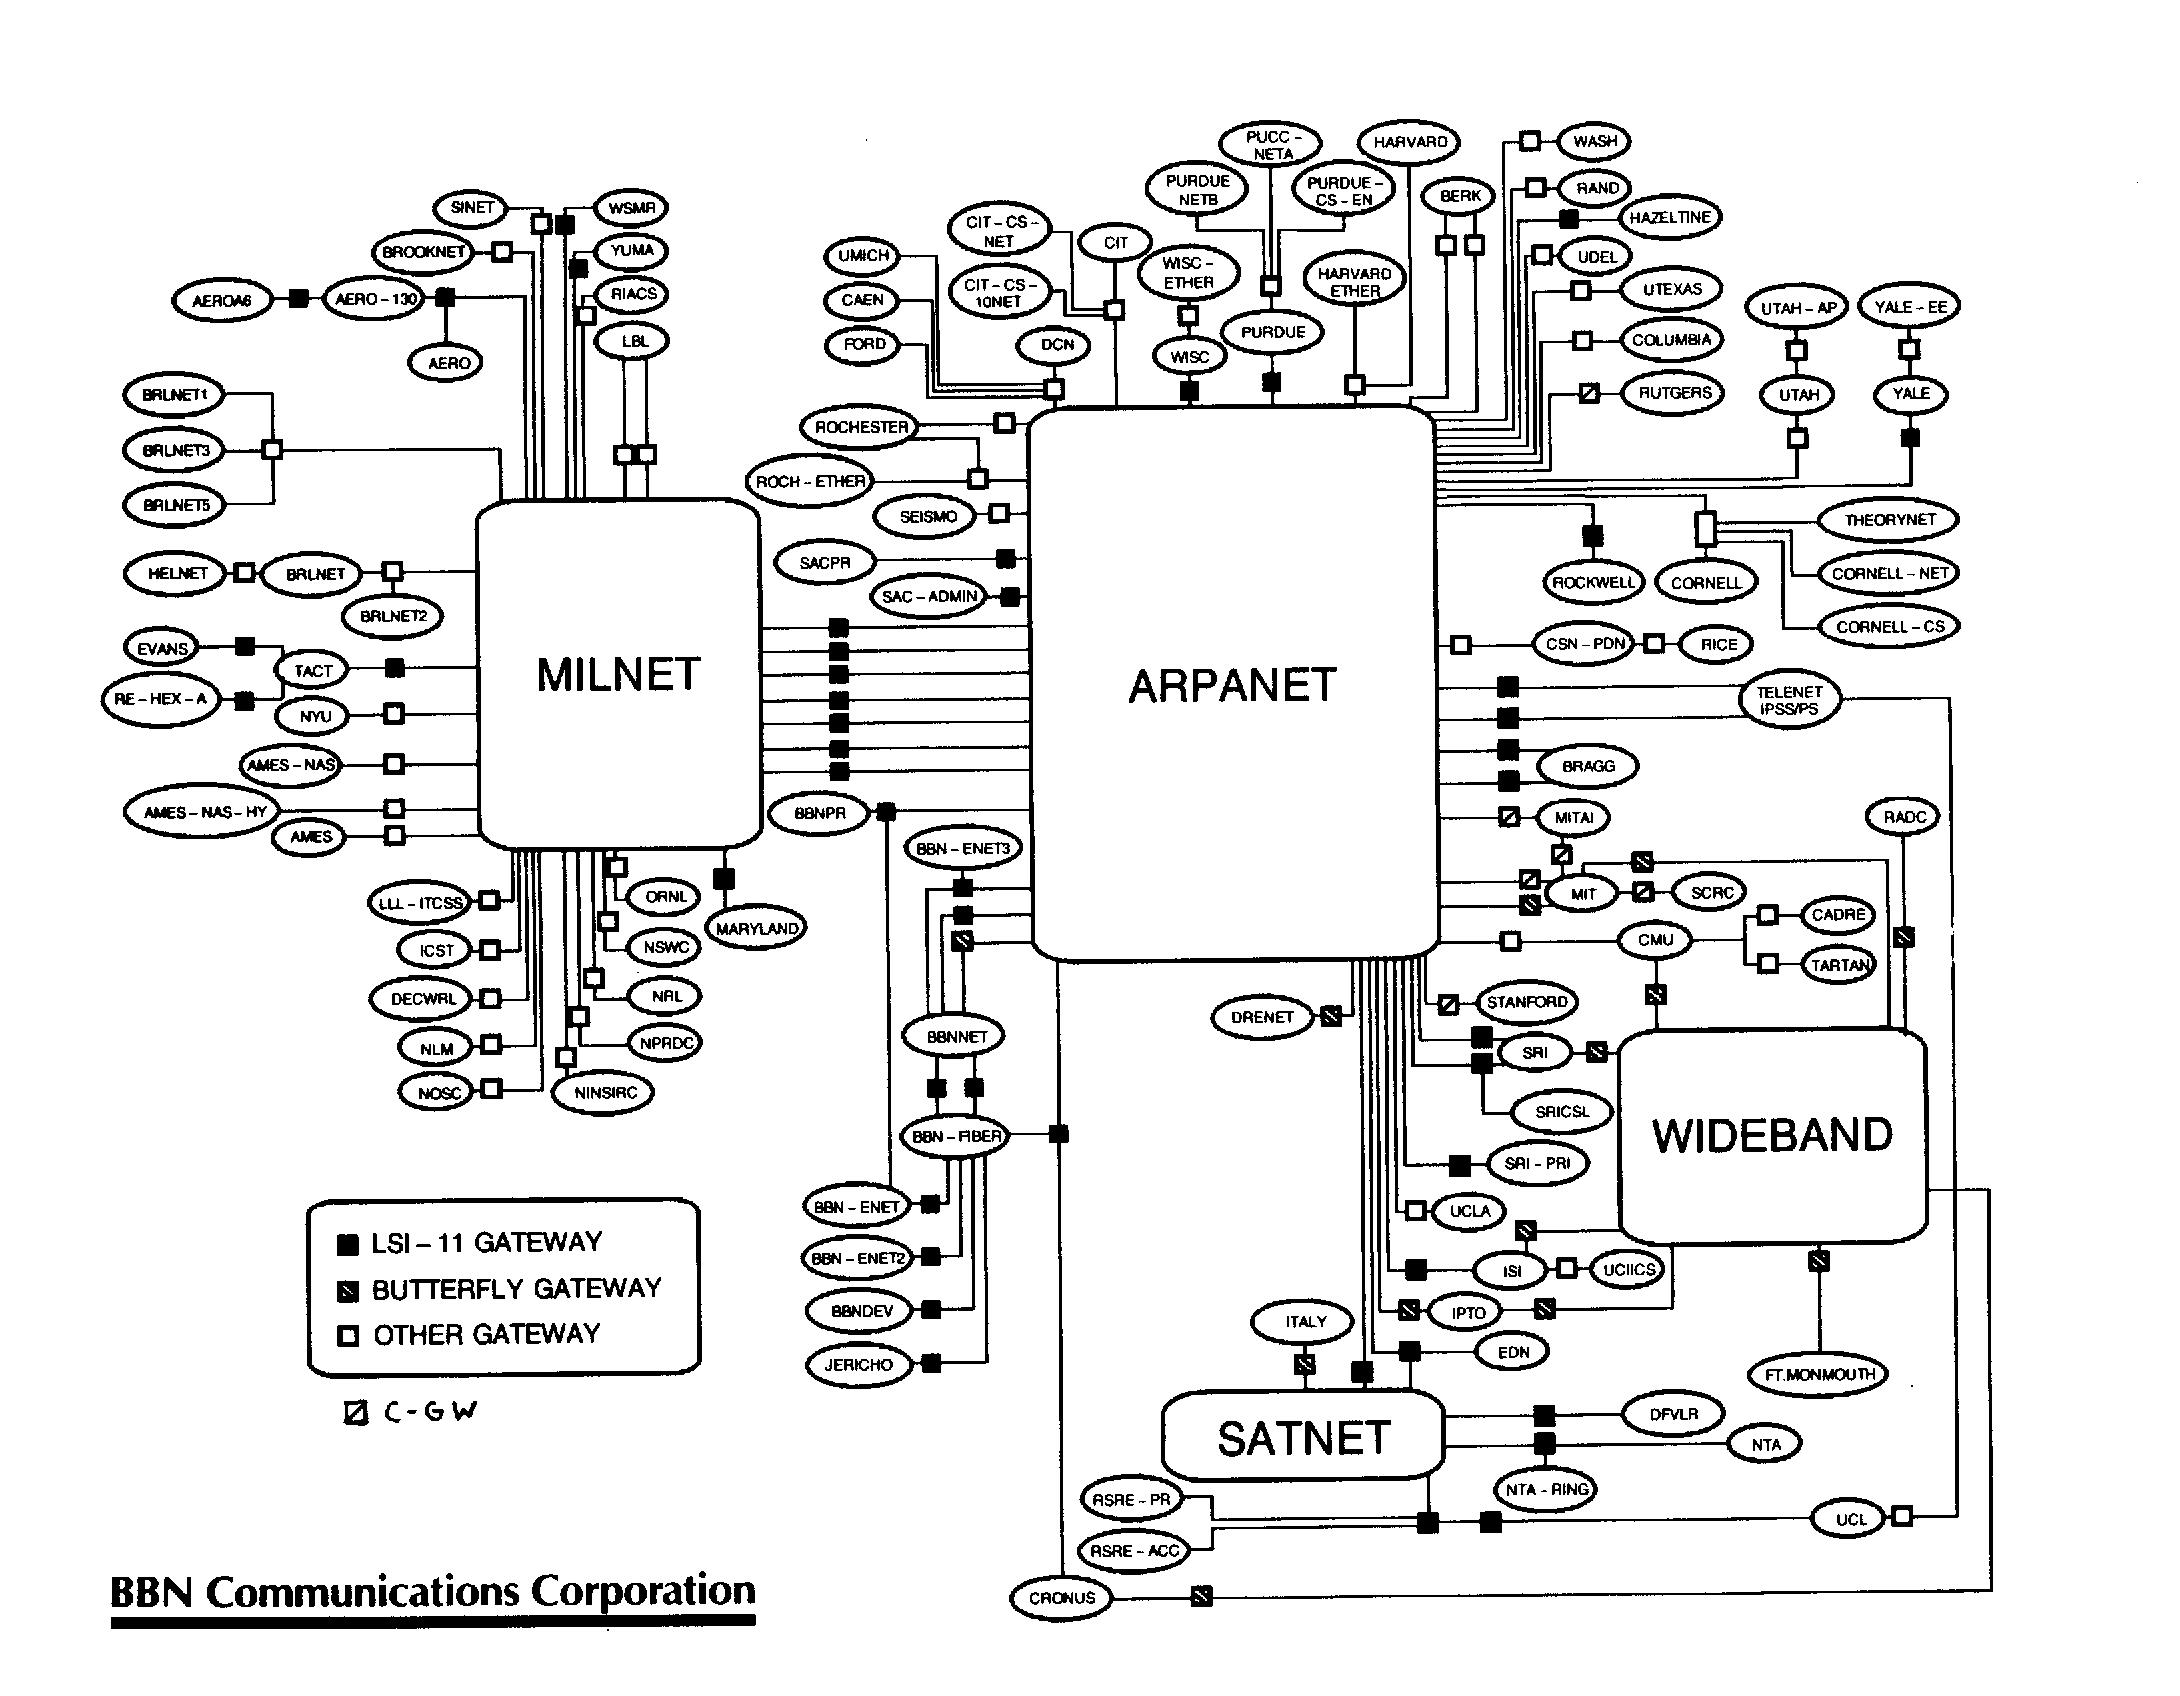 Paper making flow chart edgrafik paper making flow chart history of the internet wikipediachart geenschuldenfo Images